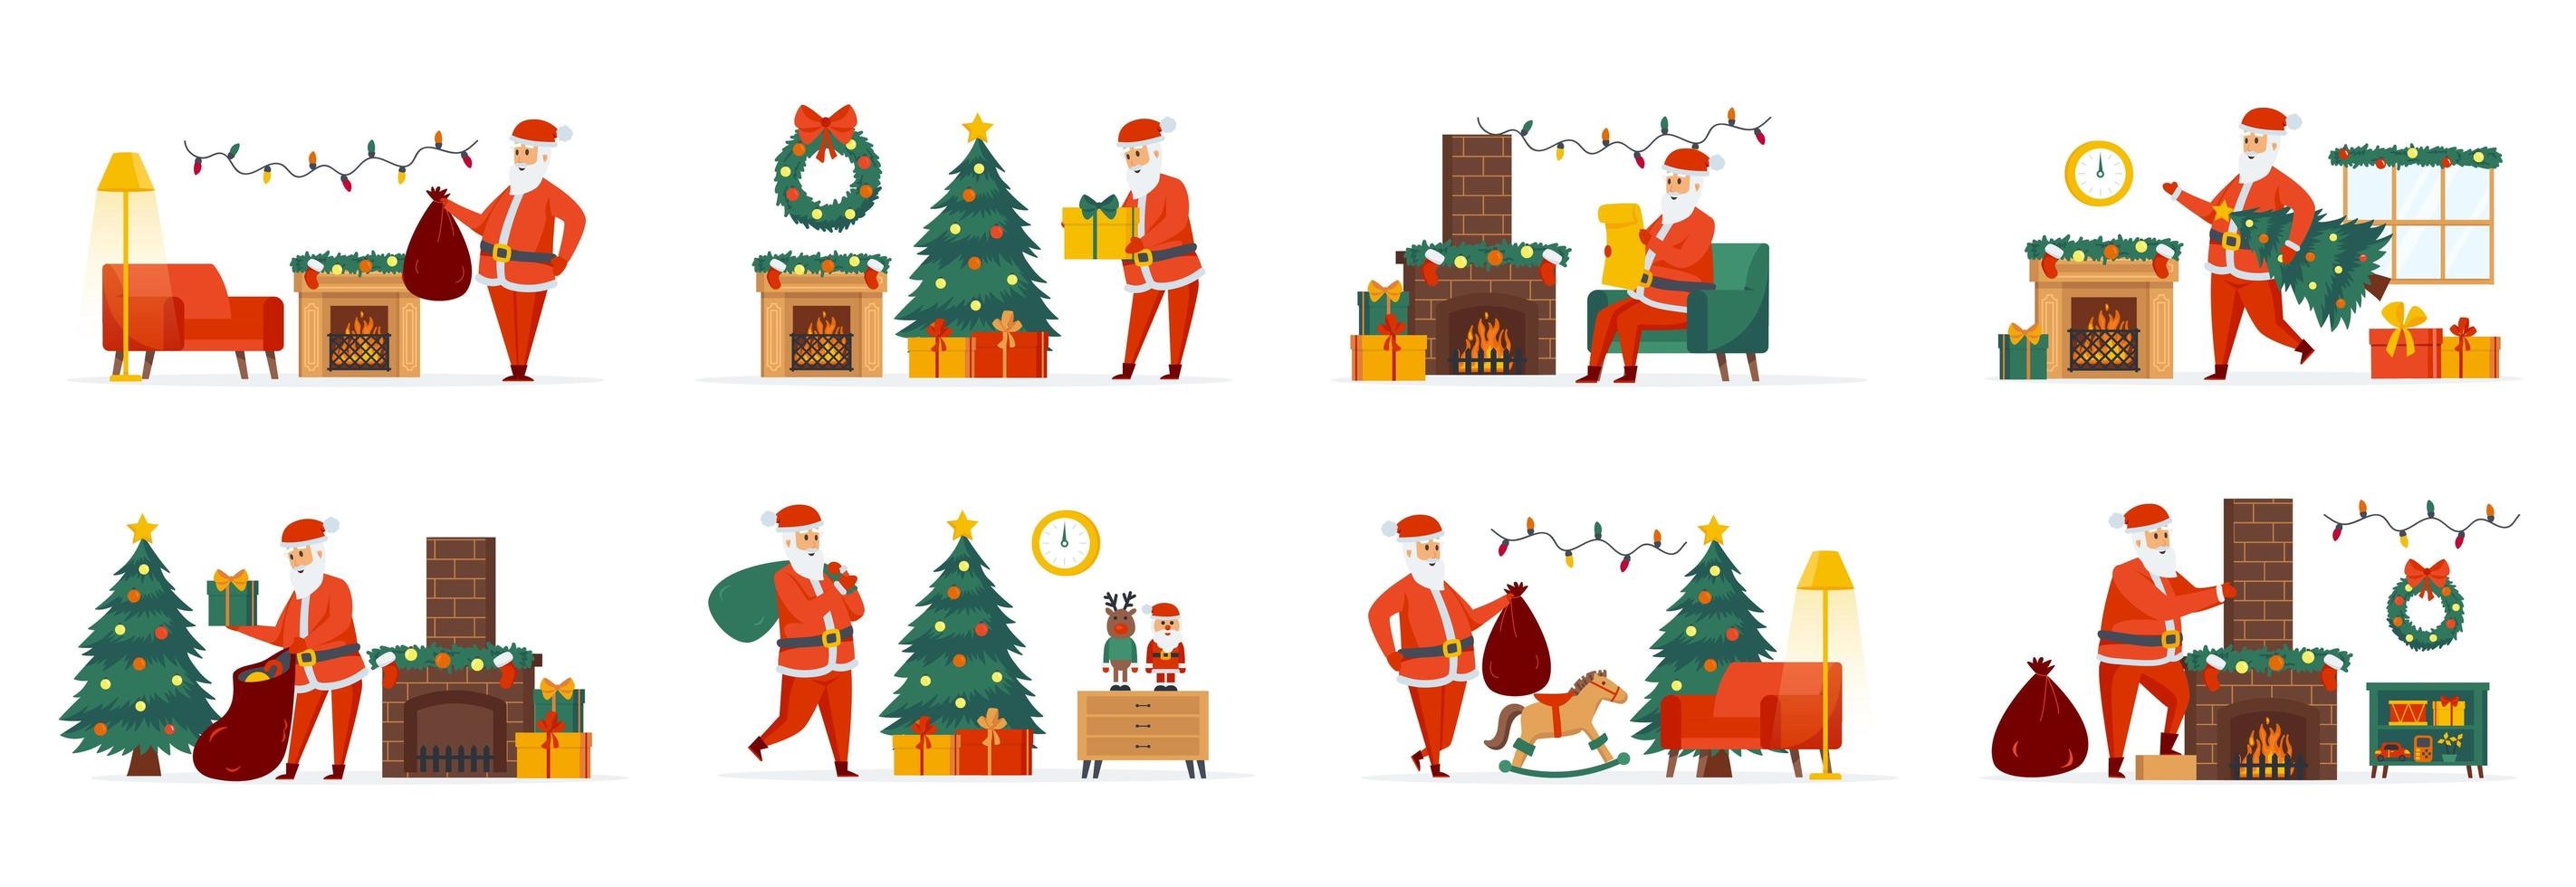 Christmas Santa Claus bundle of scenes with characters vector